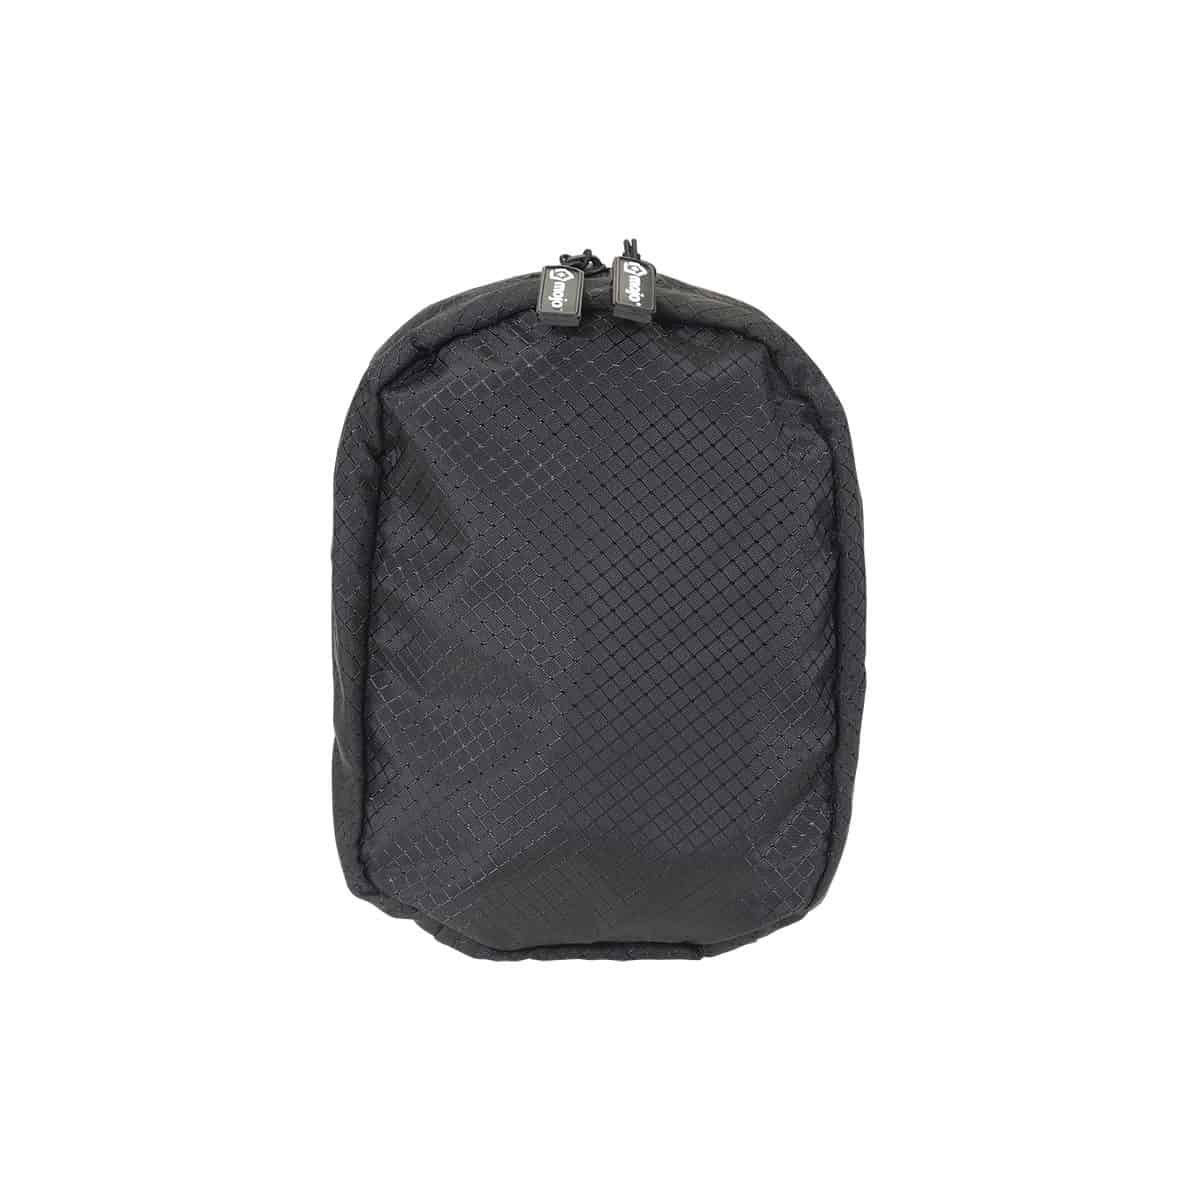 mojo responder first aid bag closed front black